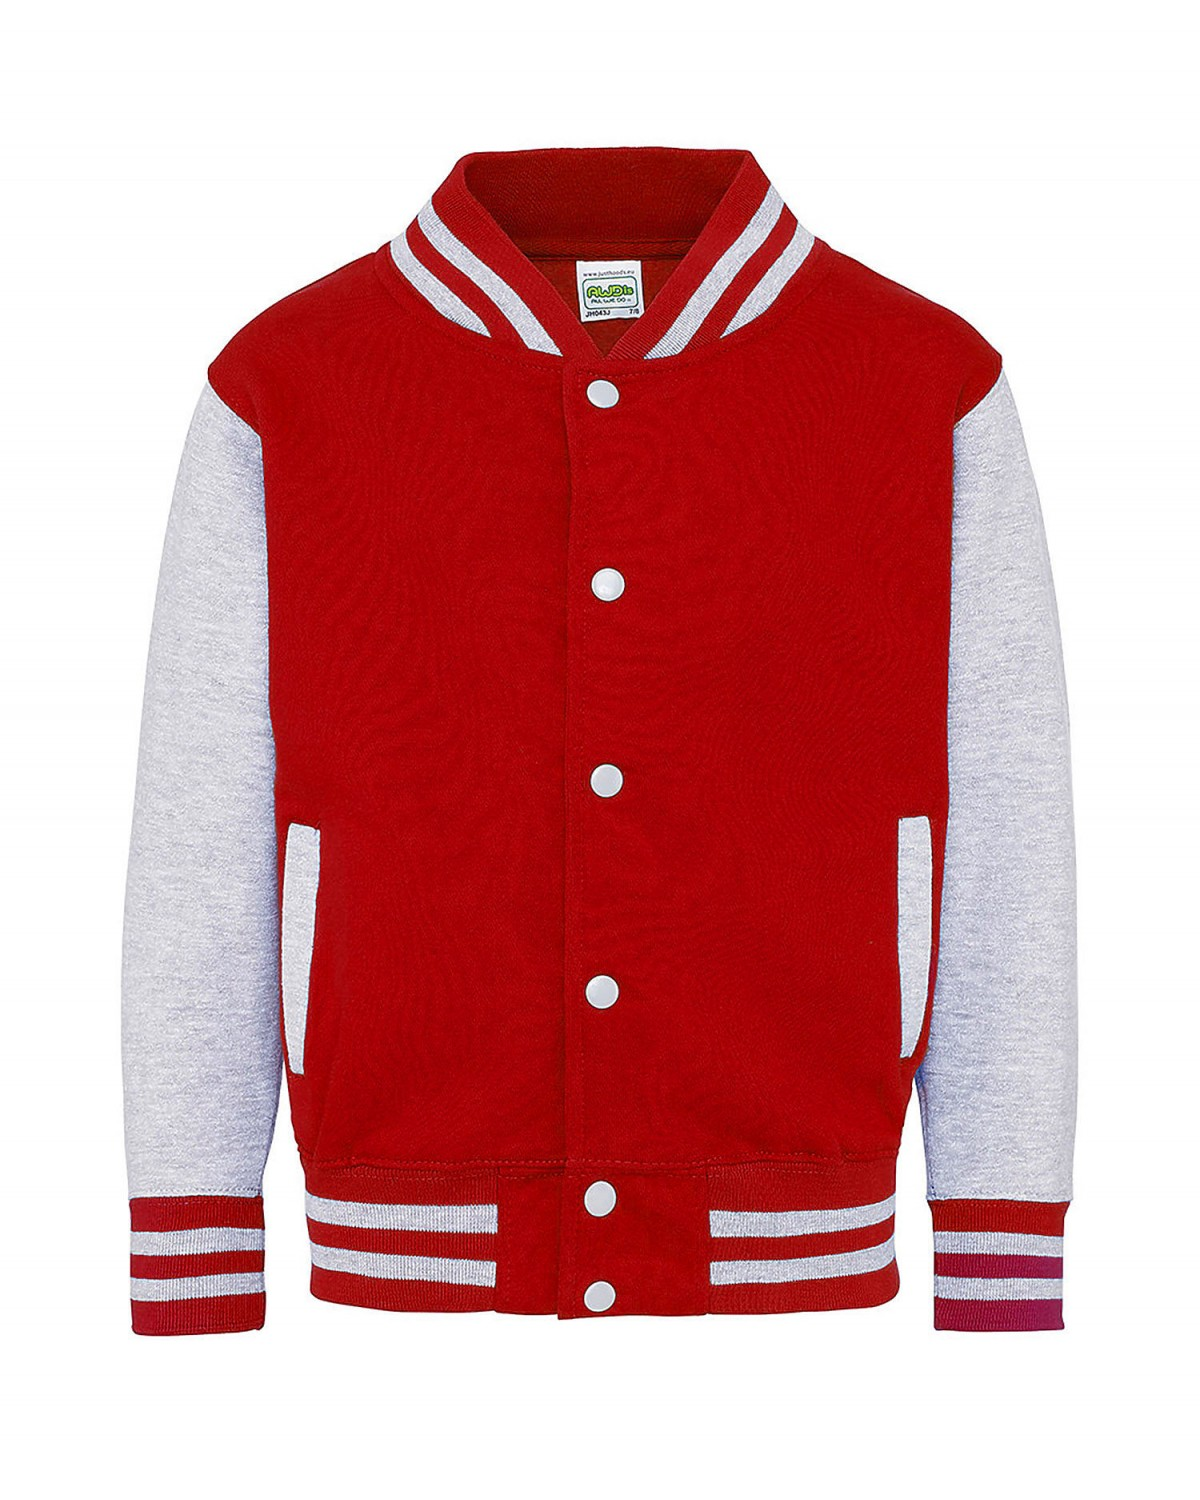 JHY043 AWDis Fire Red/Heather Grey